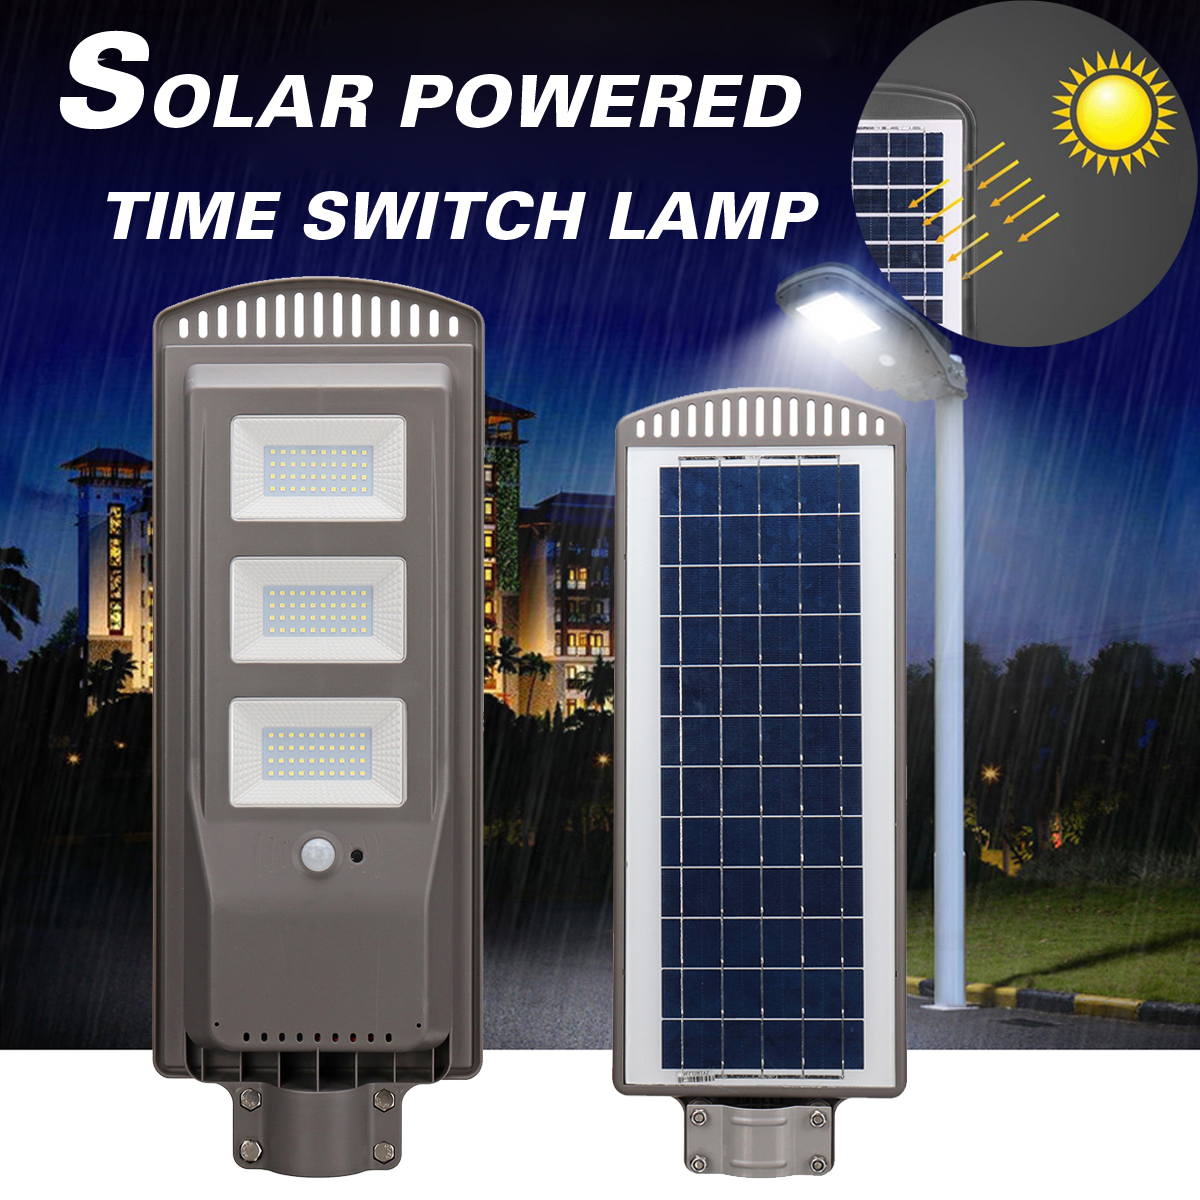 цена на New 60W Solar Powered Panel LED Solar Street Light All-in-1 Time Switch Waterproof IP67 Wall Lighting Lamp for Outdoor Garden